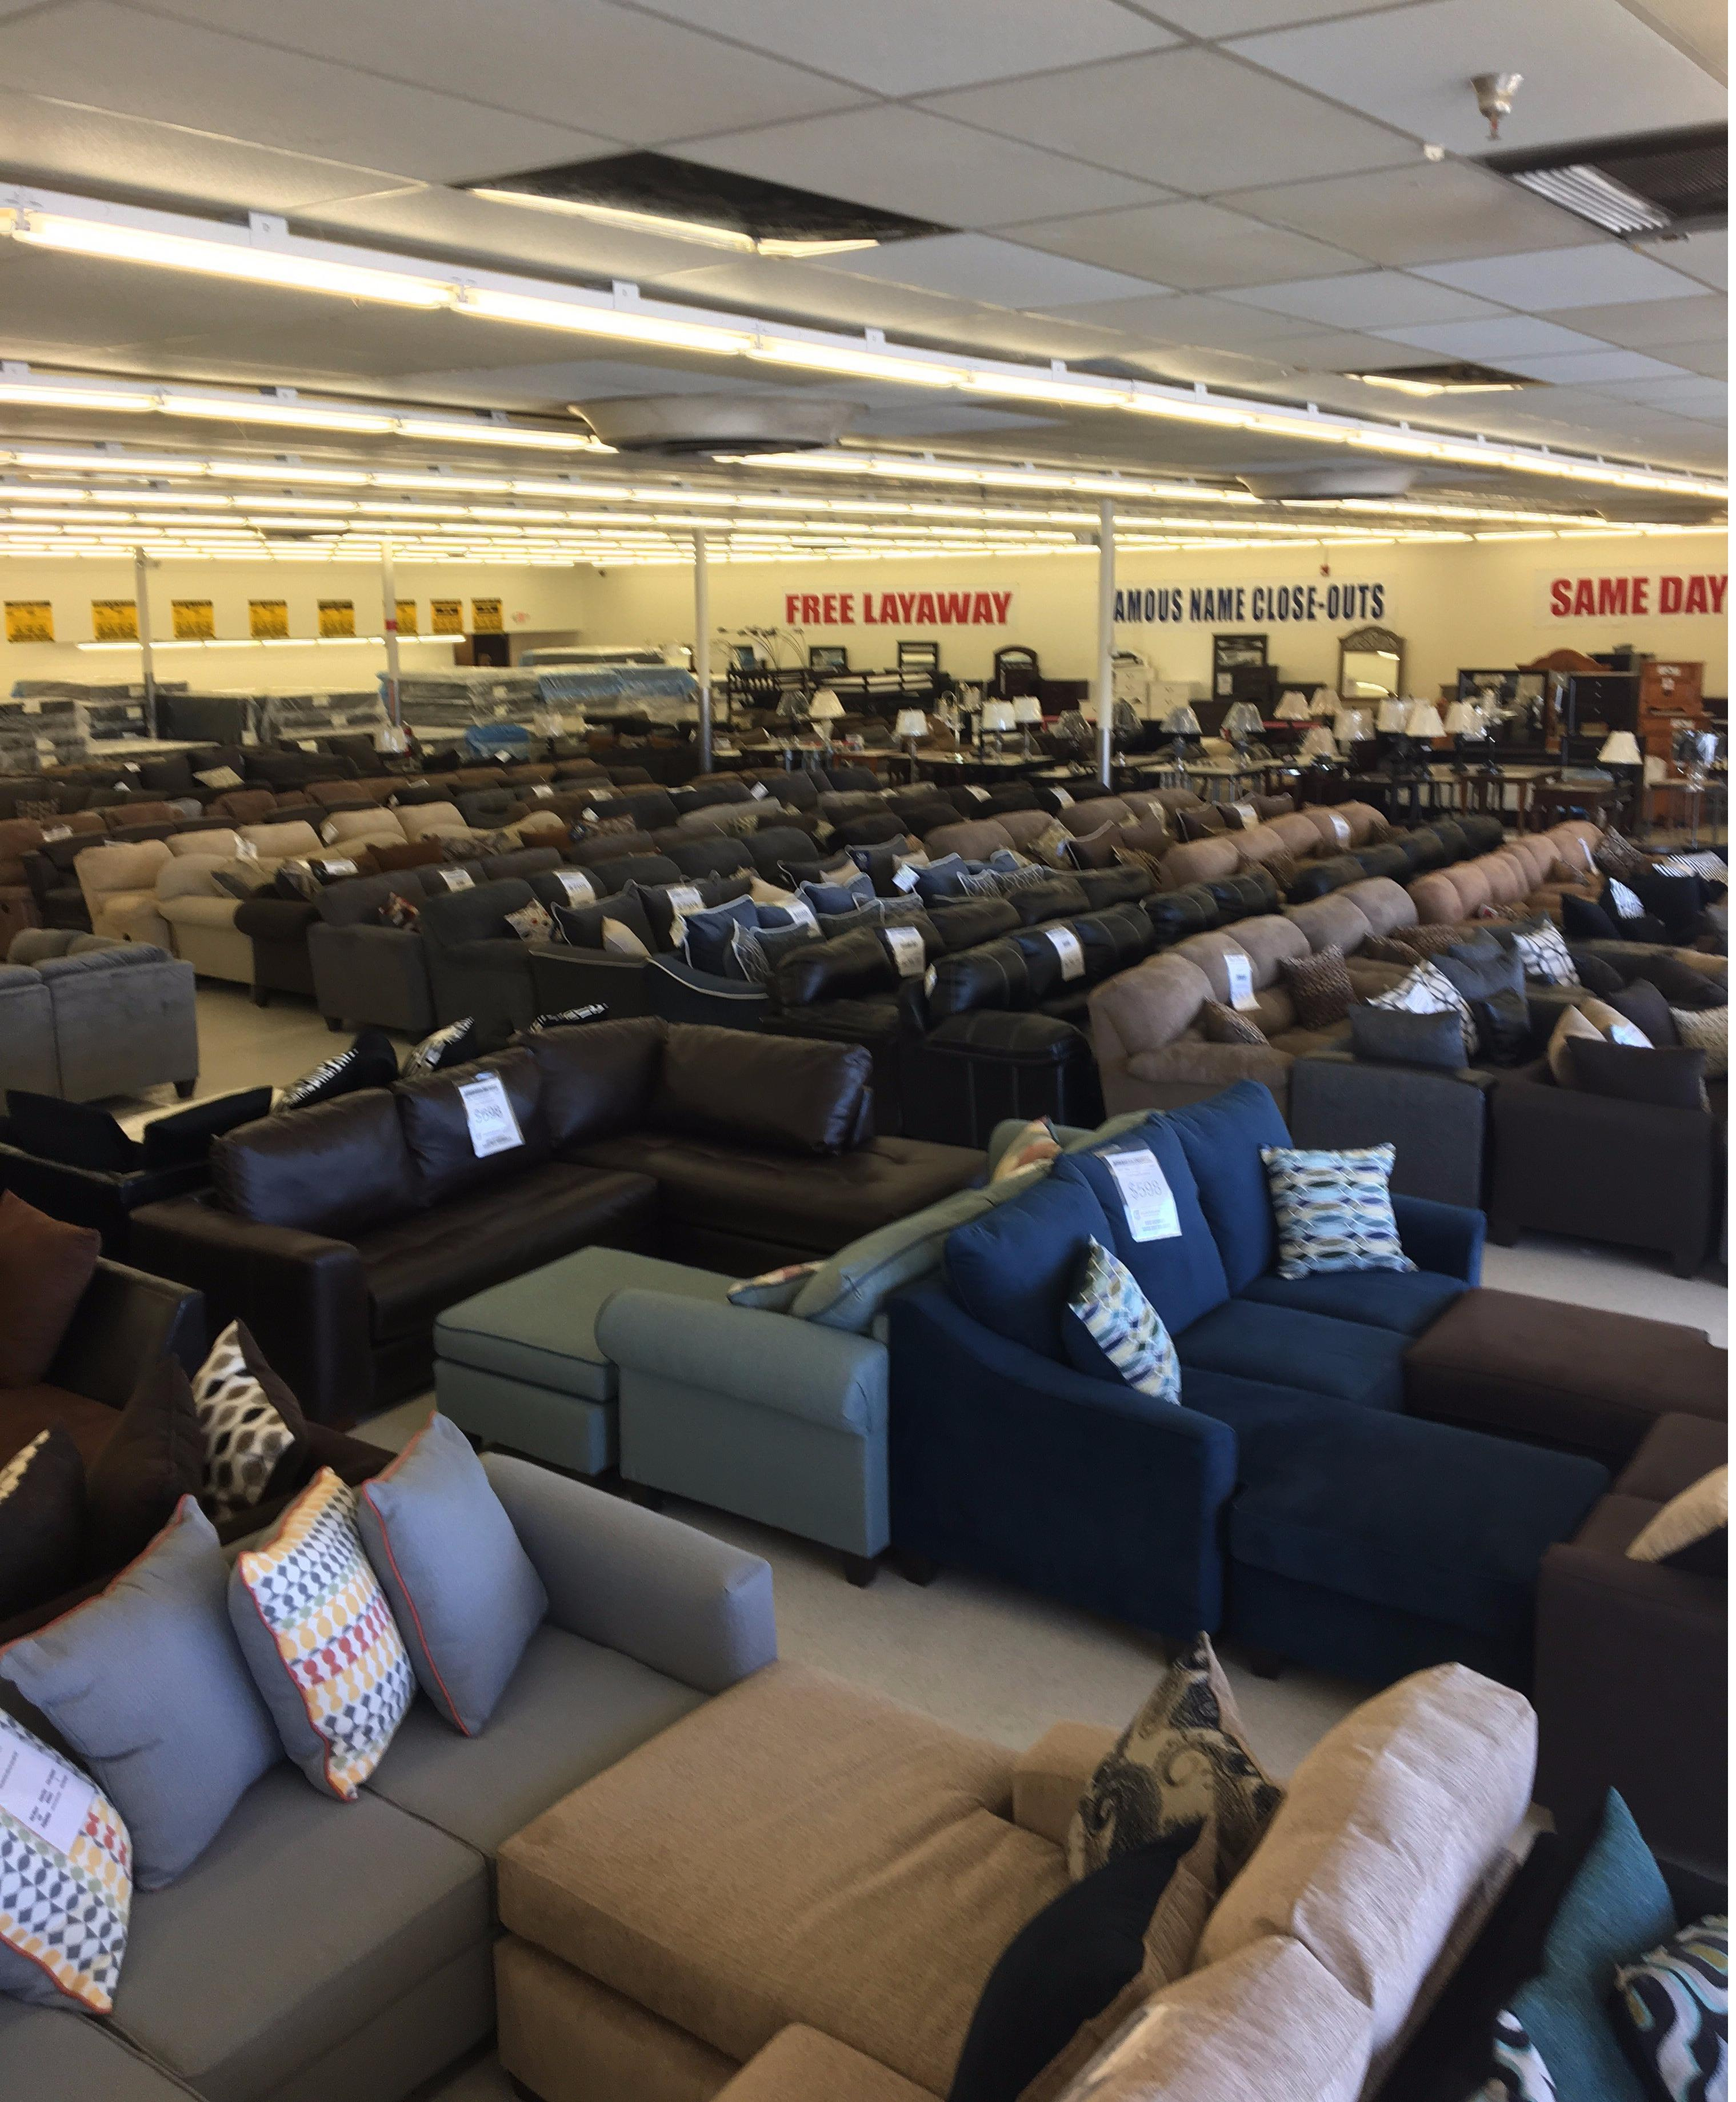 Furniture Stores Near Me With Layaway American Freight Furniture And Mattress 2600 Anderson Rd